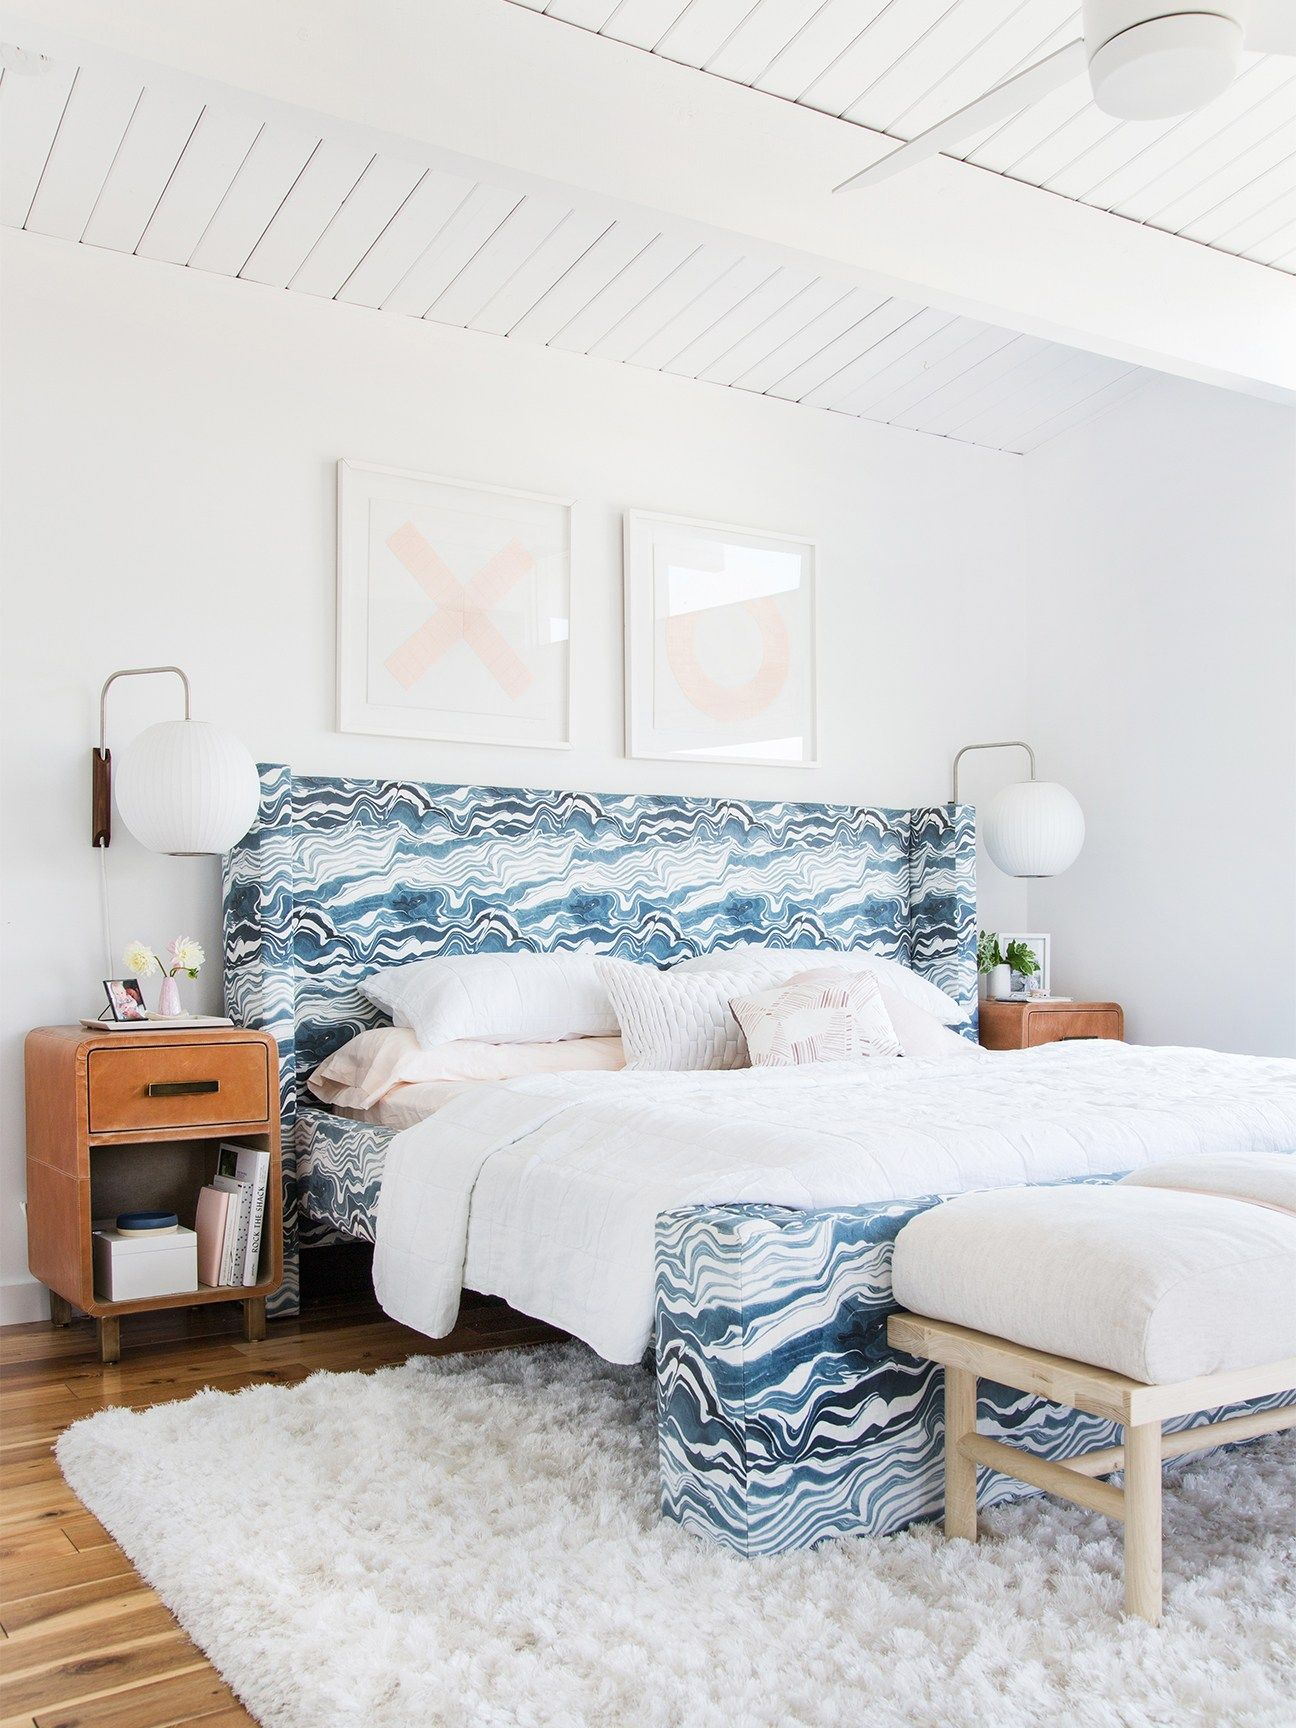 What Comes After the Shibori Dye Trend, According to 4 Design Pros